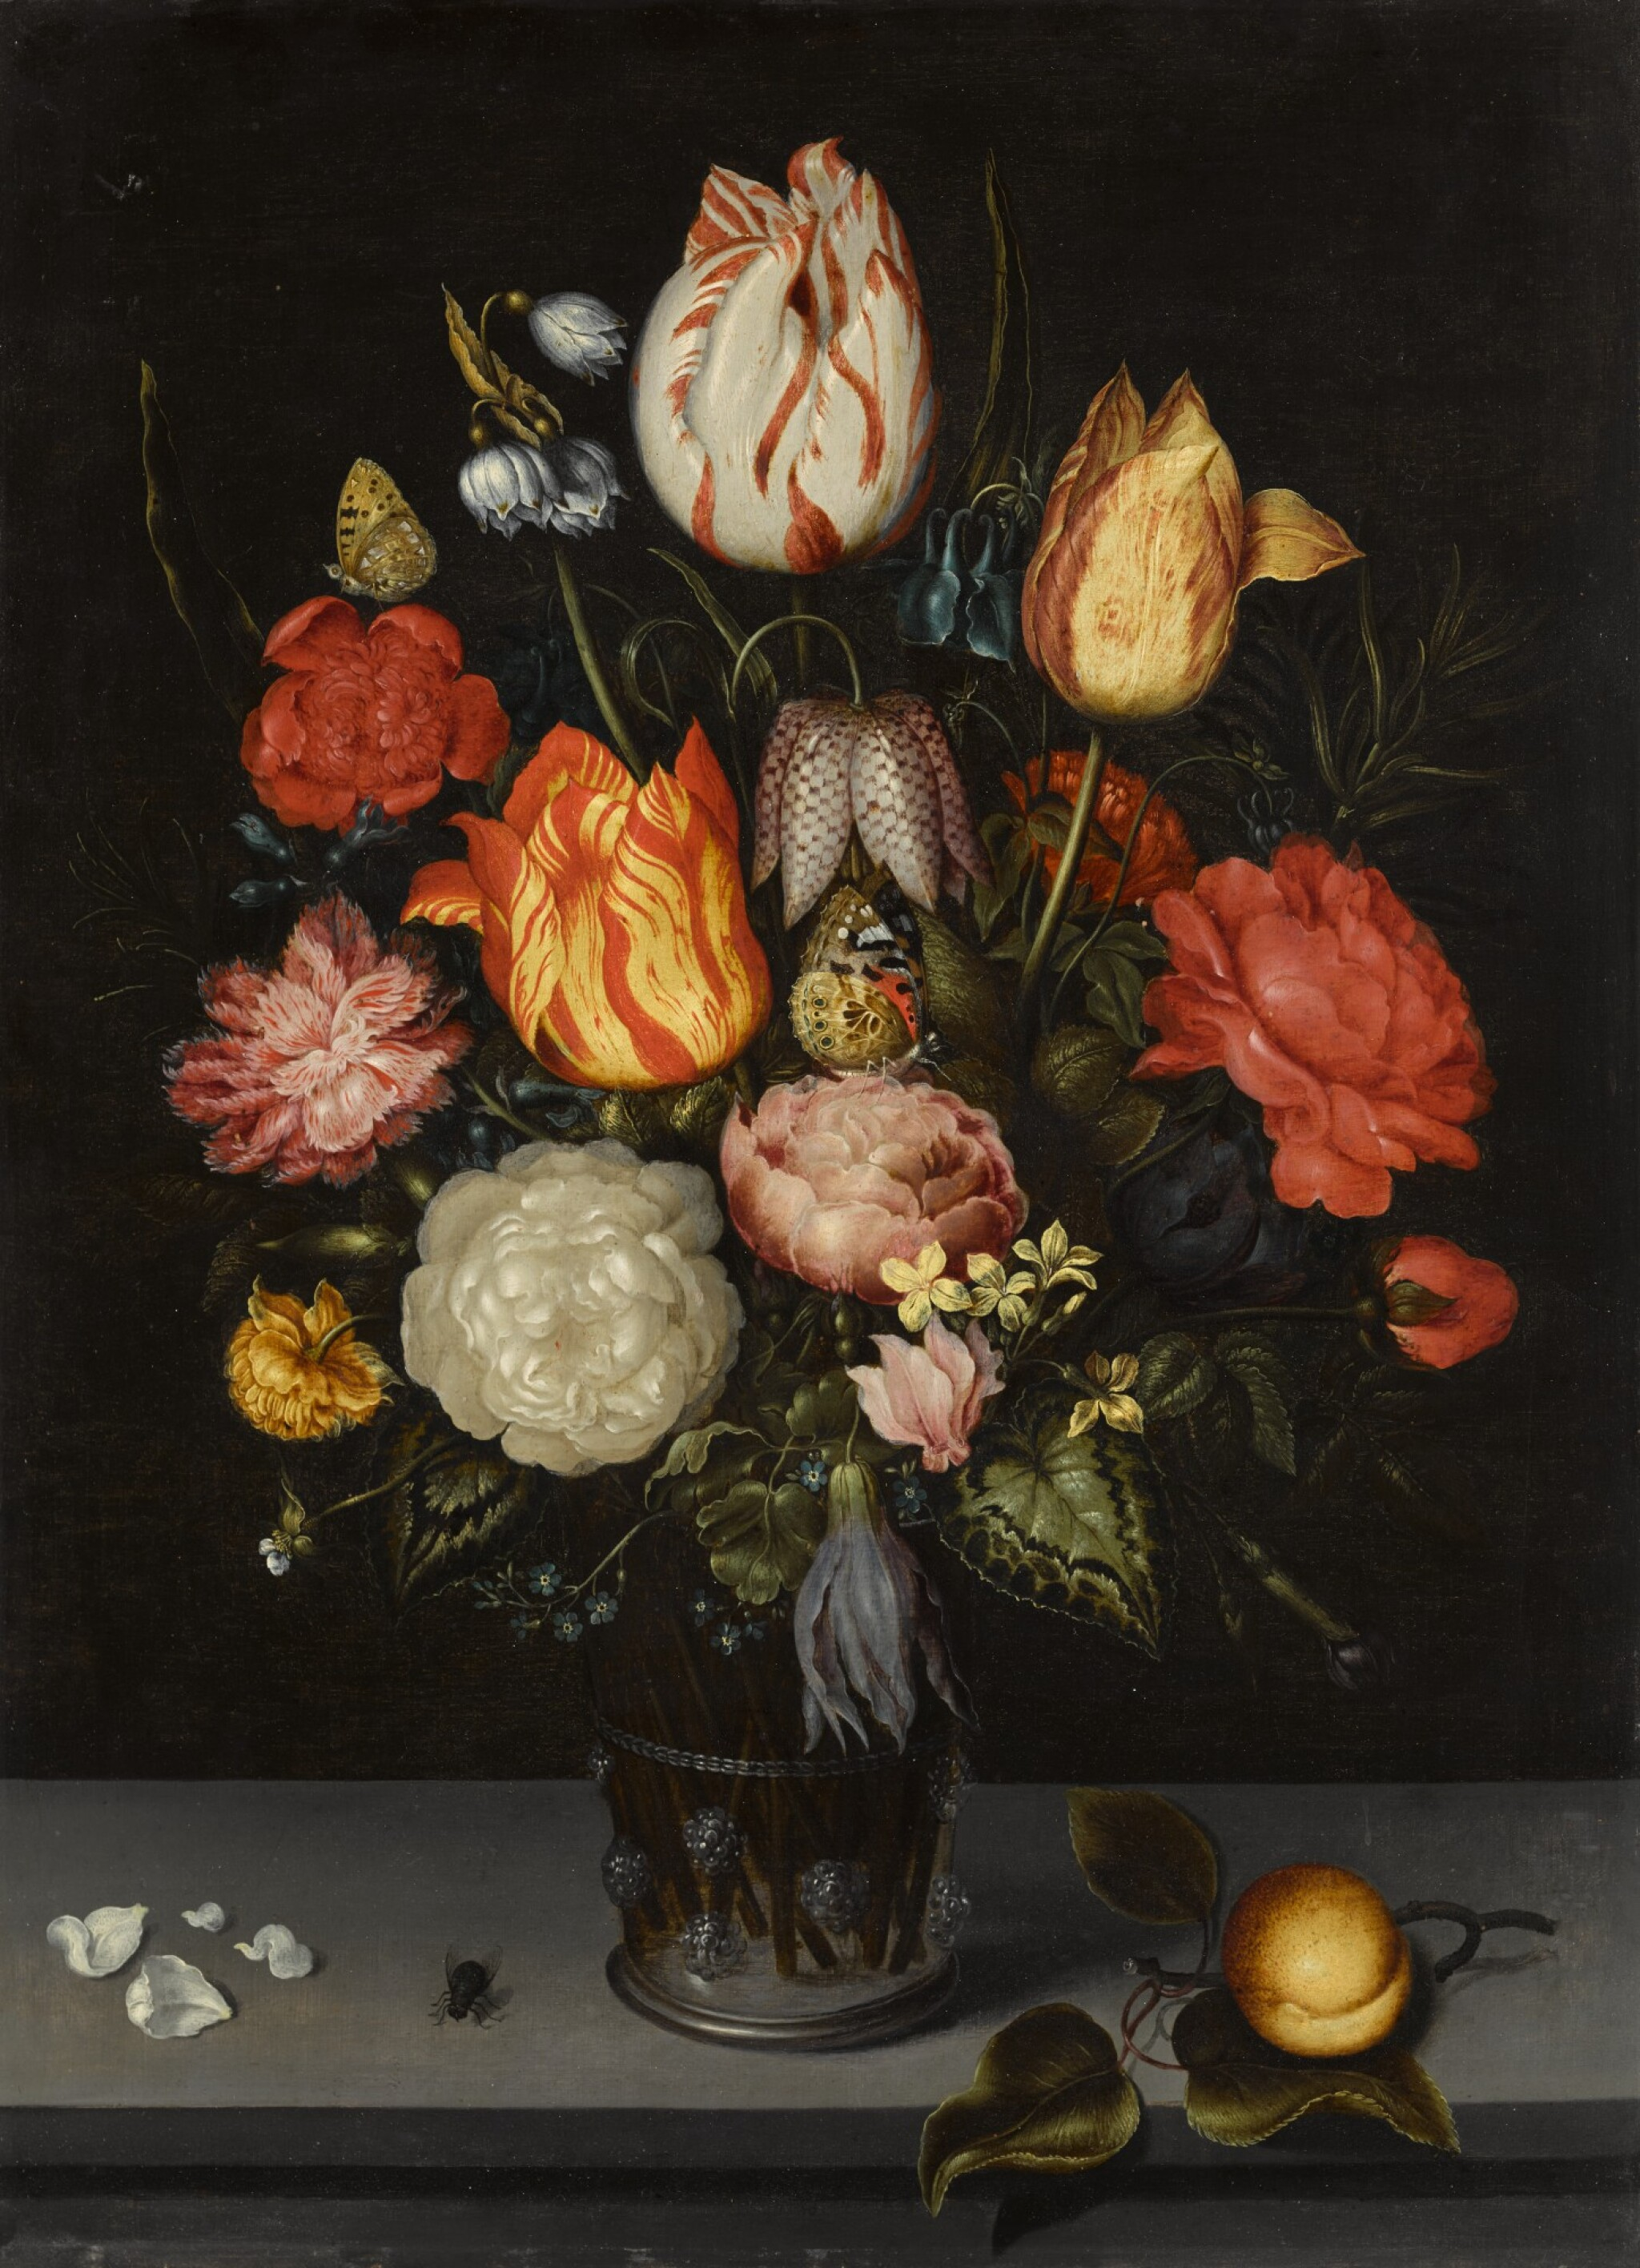 View full screen - View 1 of Floral still life including tulips and roses, in a glass beaker upon a stone ledge.